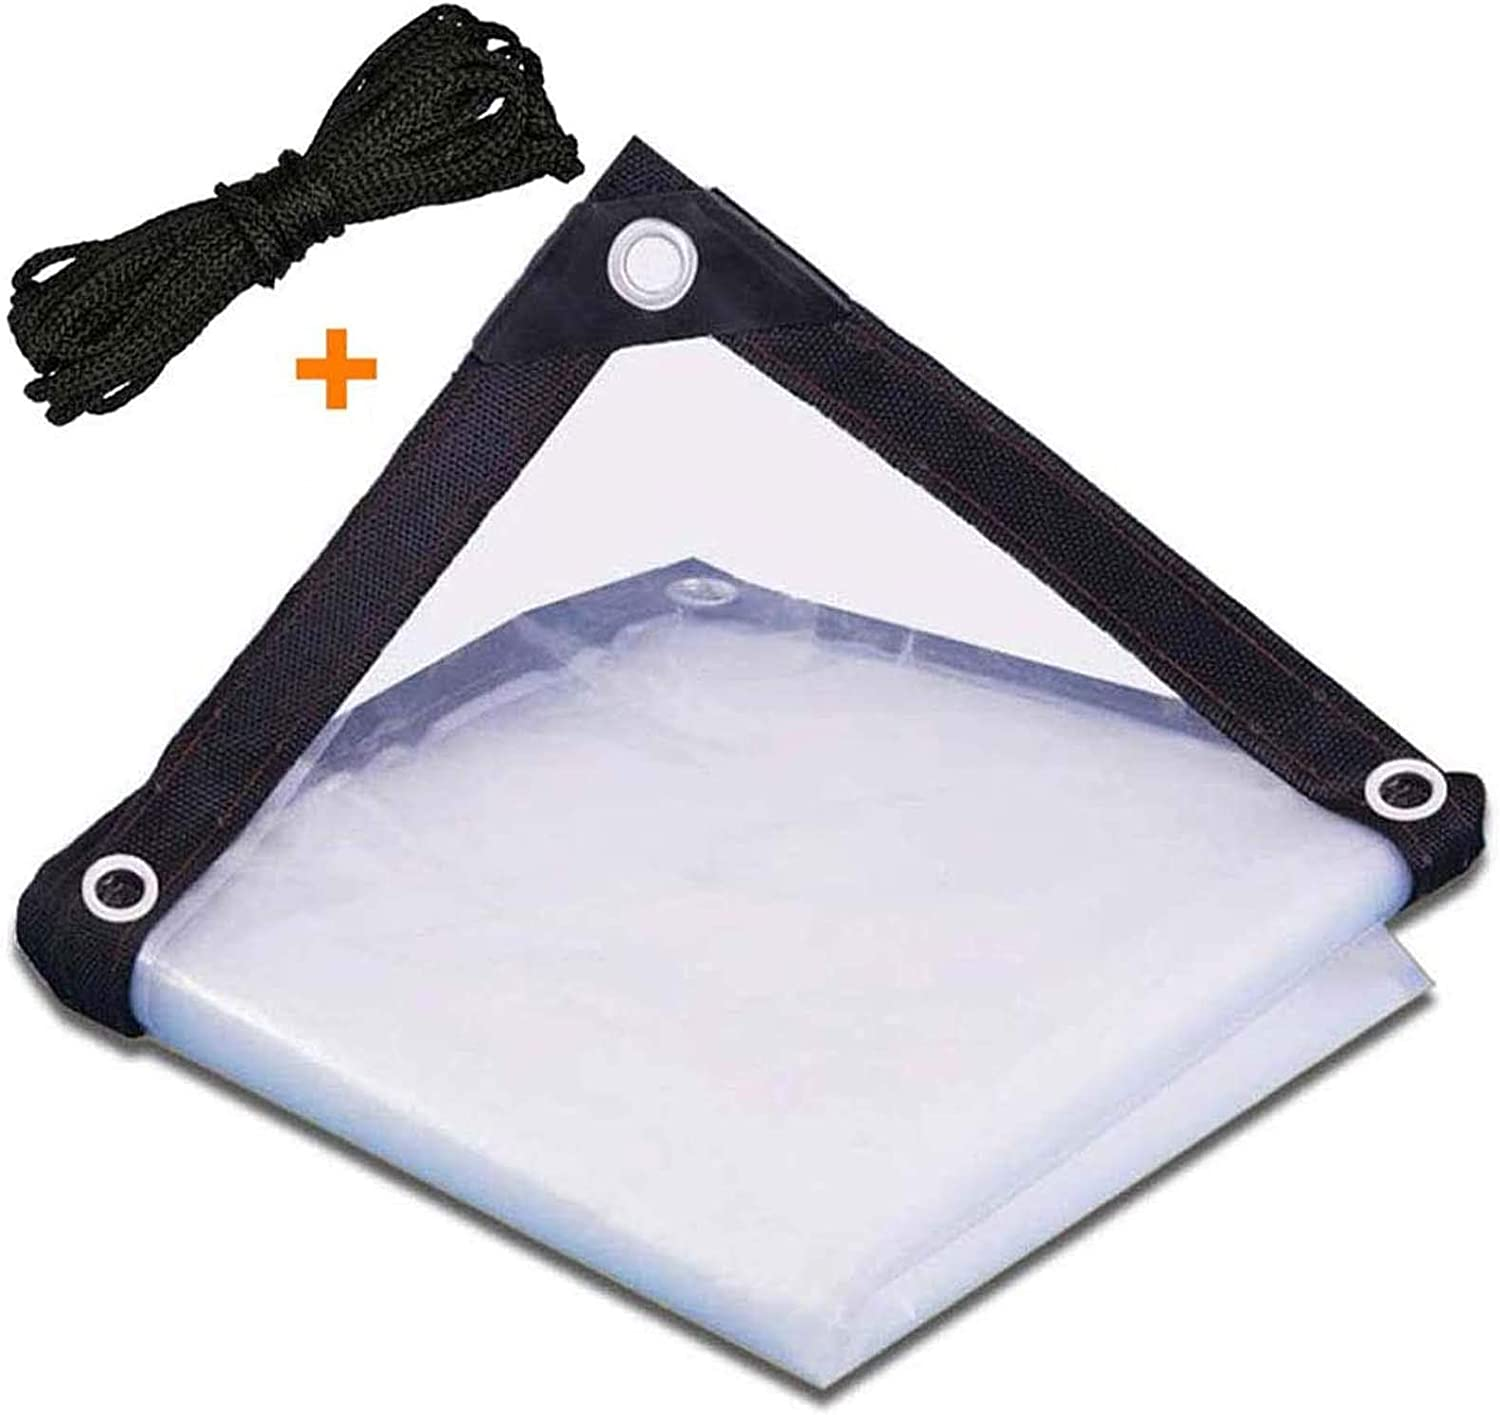 WZDD Clear Tarps Heavy Duty Indefinitely Cover Waterproof Water 3ftx3ft New Free Shipping Tarp